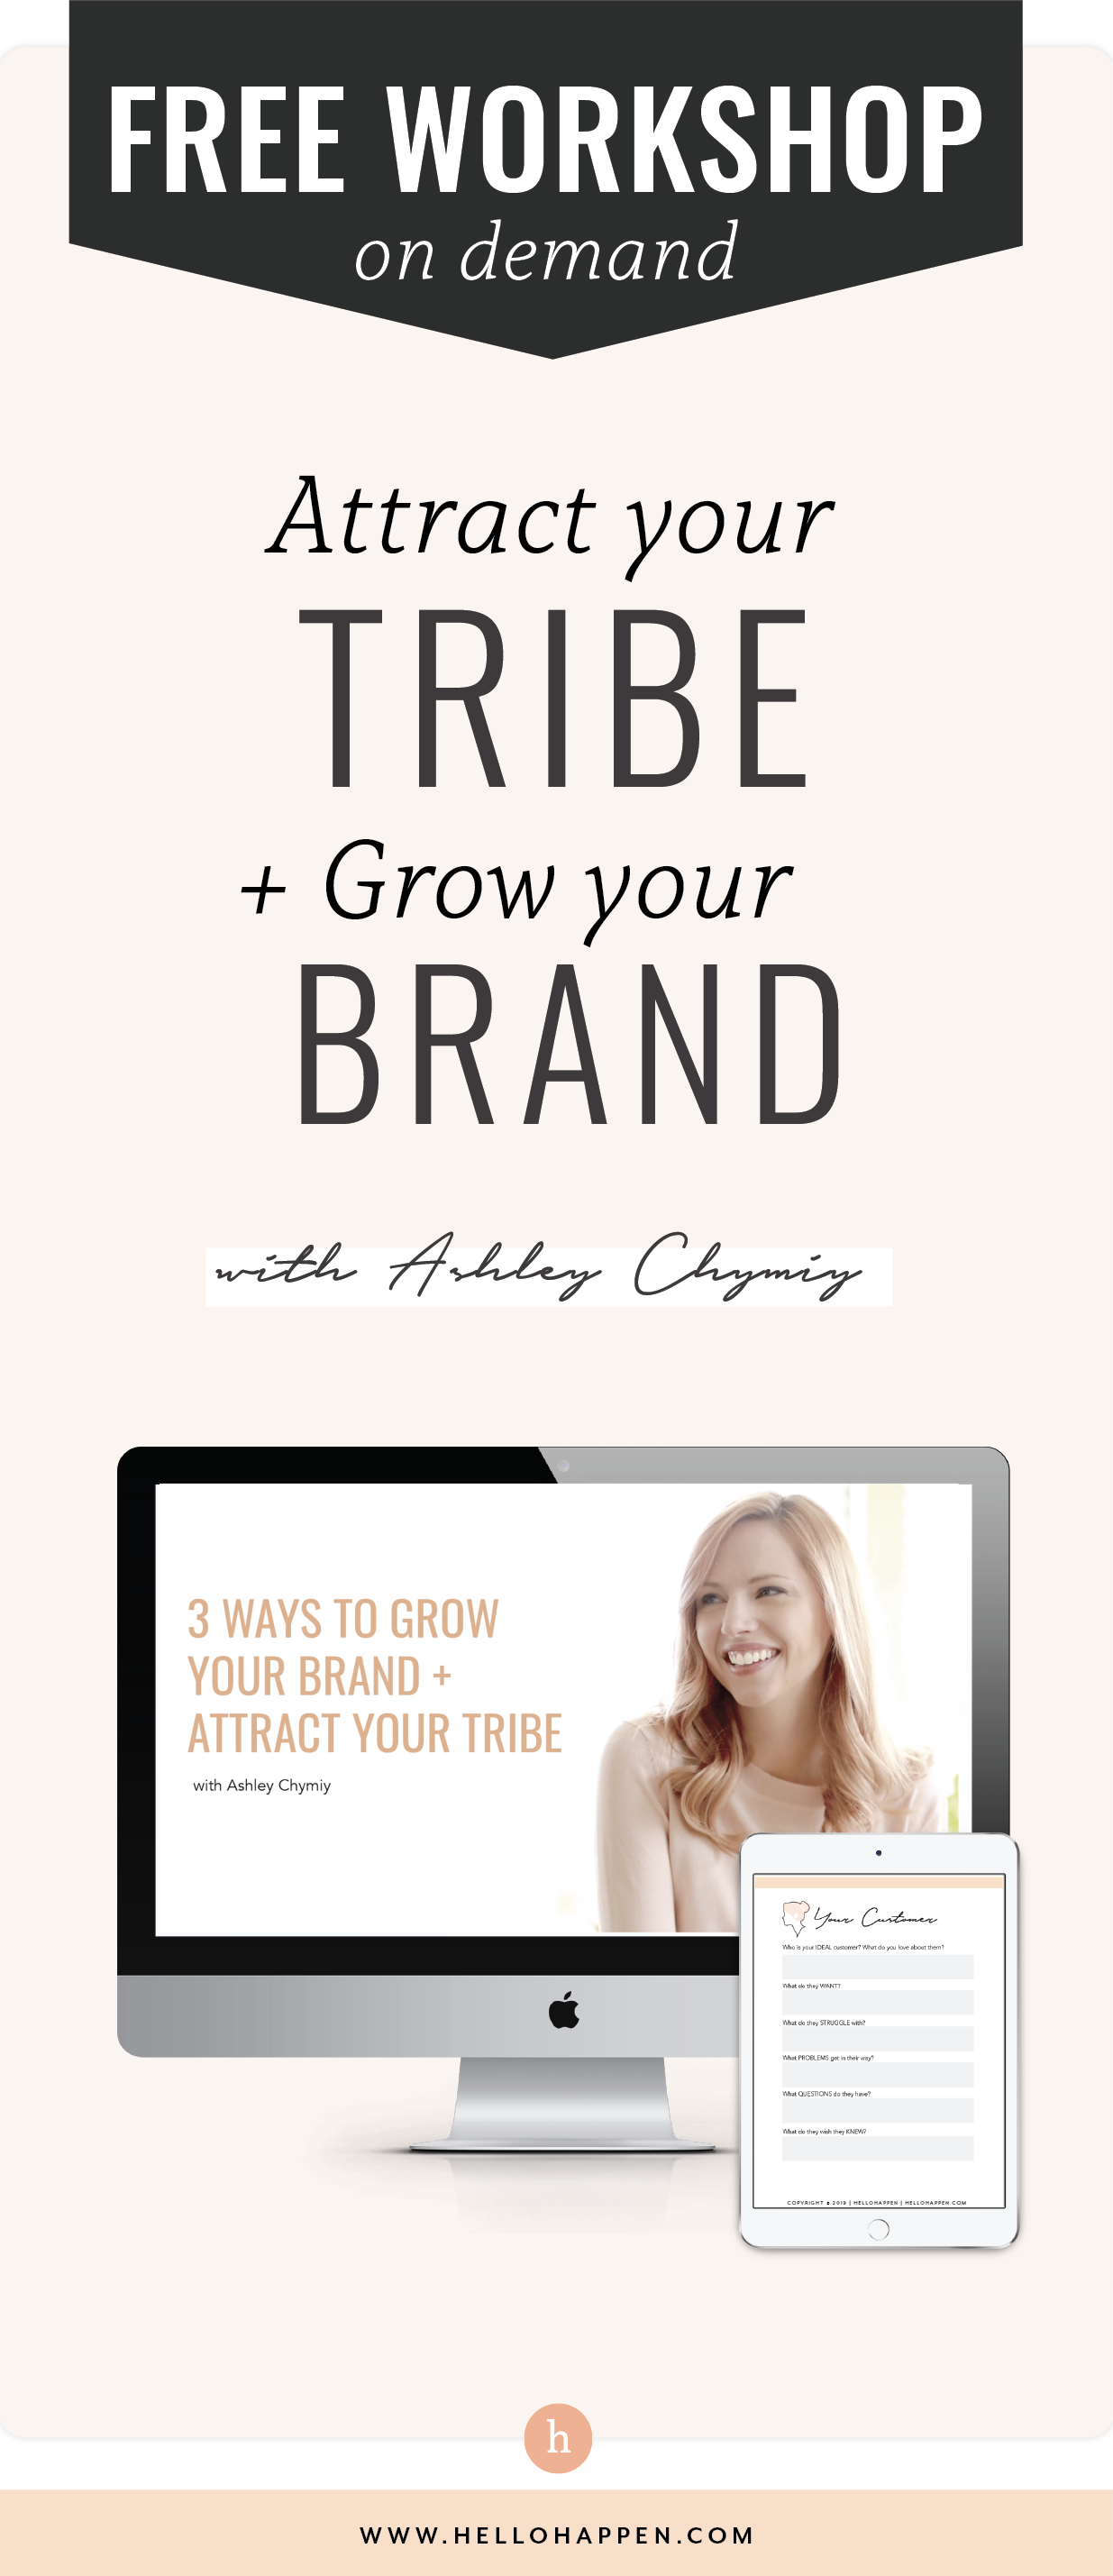 This free workshop walks you through 3 strategies for attracting your tribe online! It's a heart-centered, values-driven approach to marketing + selling through service + passion. Hosted by Ashley Chymiy, business coach + owner of Hellohappen. Snag your seat! brand strategy / business strategy / small business tips / branding tips / girl boss tips / small business ideas / marketing tips / #girlboss / #smallbusiness